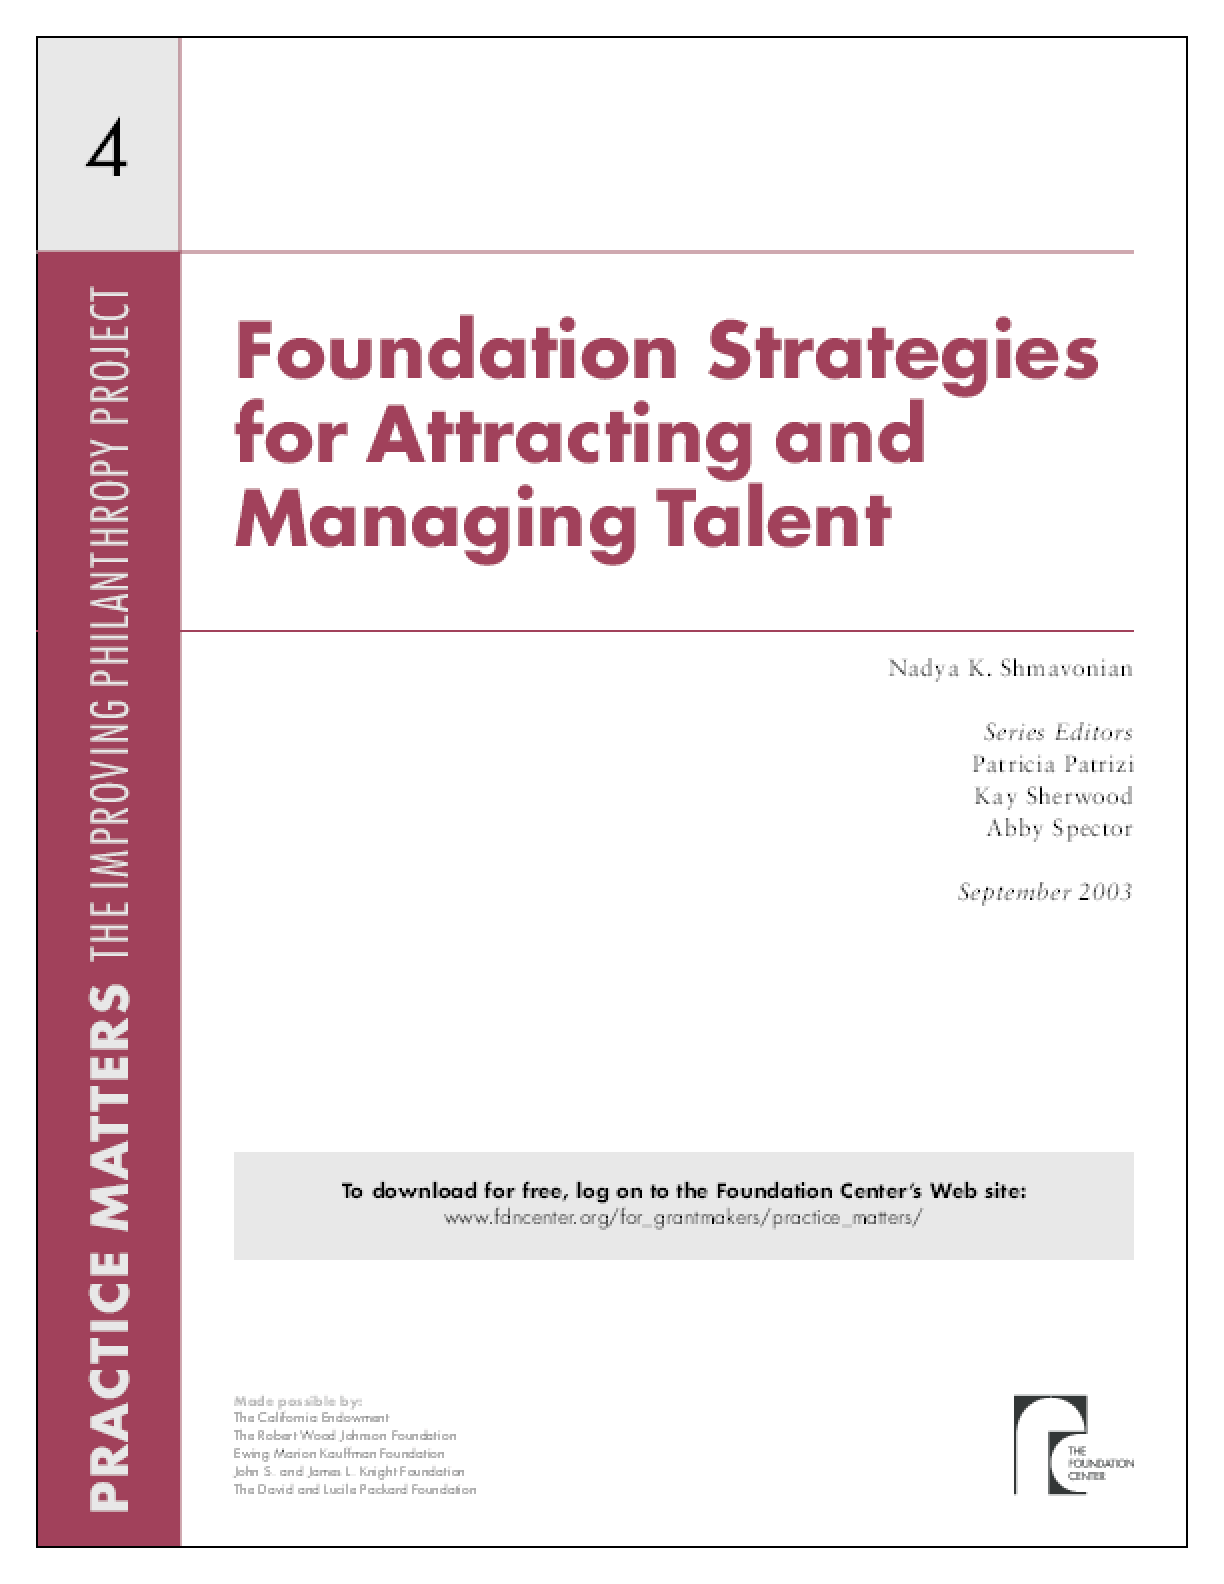 Foundation Strategies for Attracting and Managing Talent